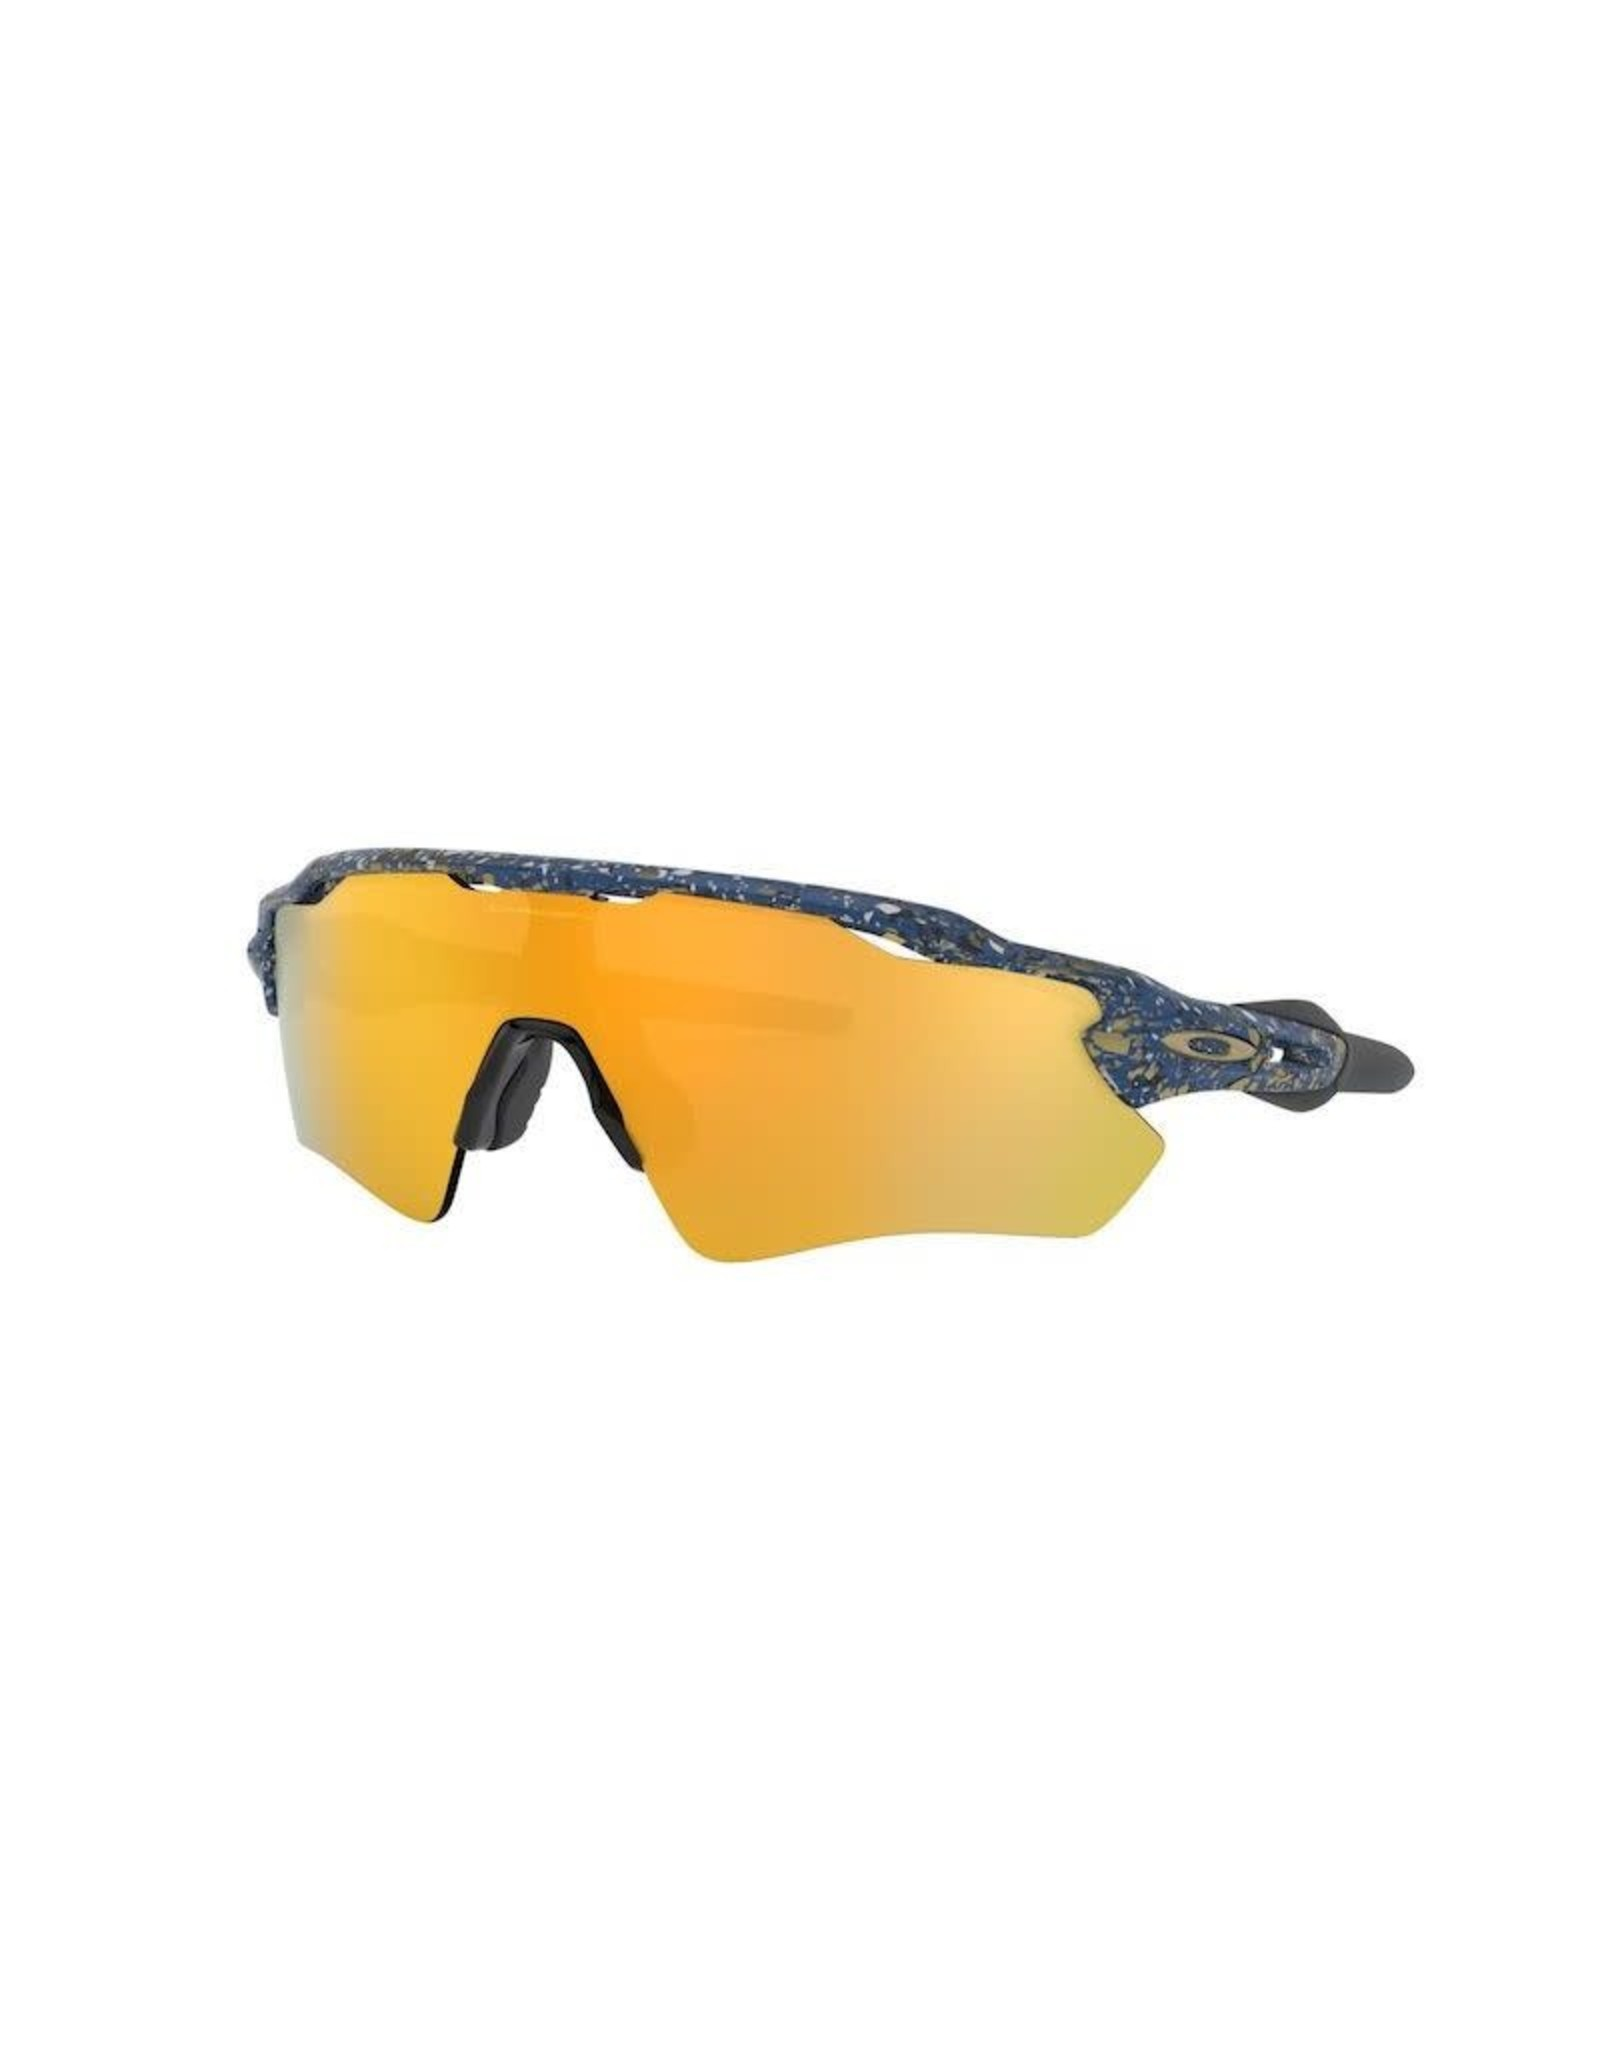 Oakley Oakley Radar EV Path SplatterPosdn w/24K